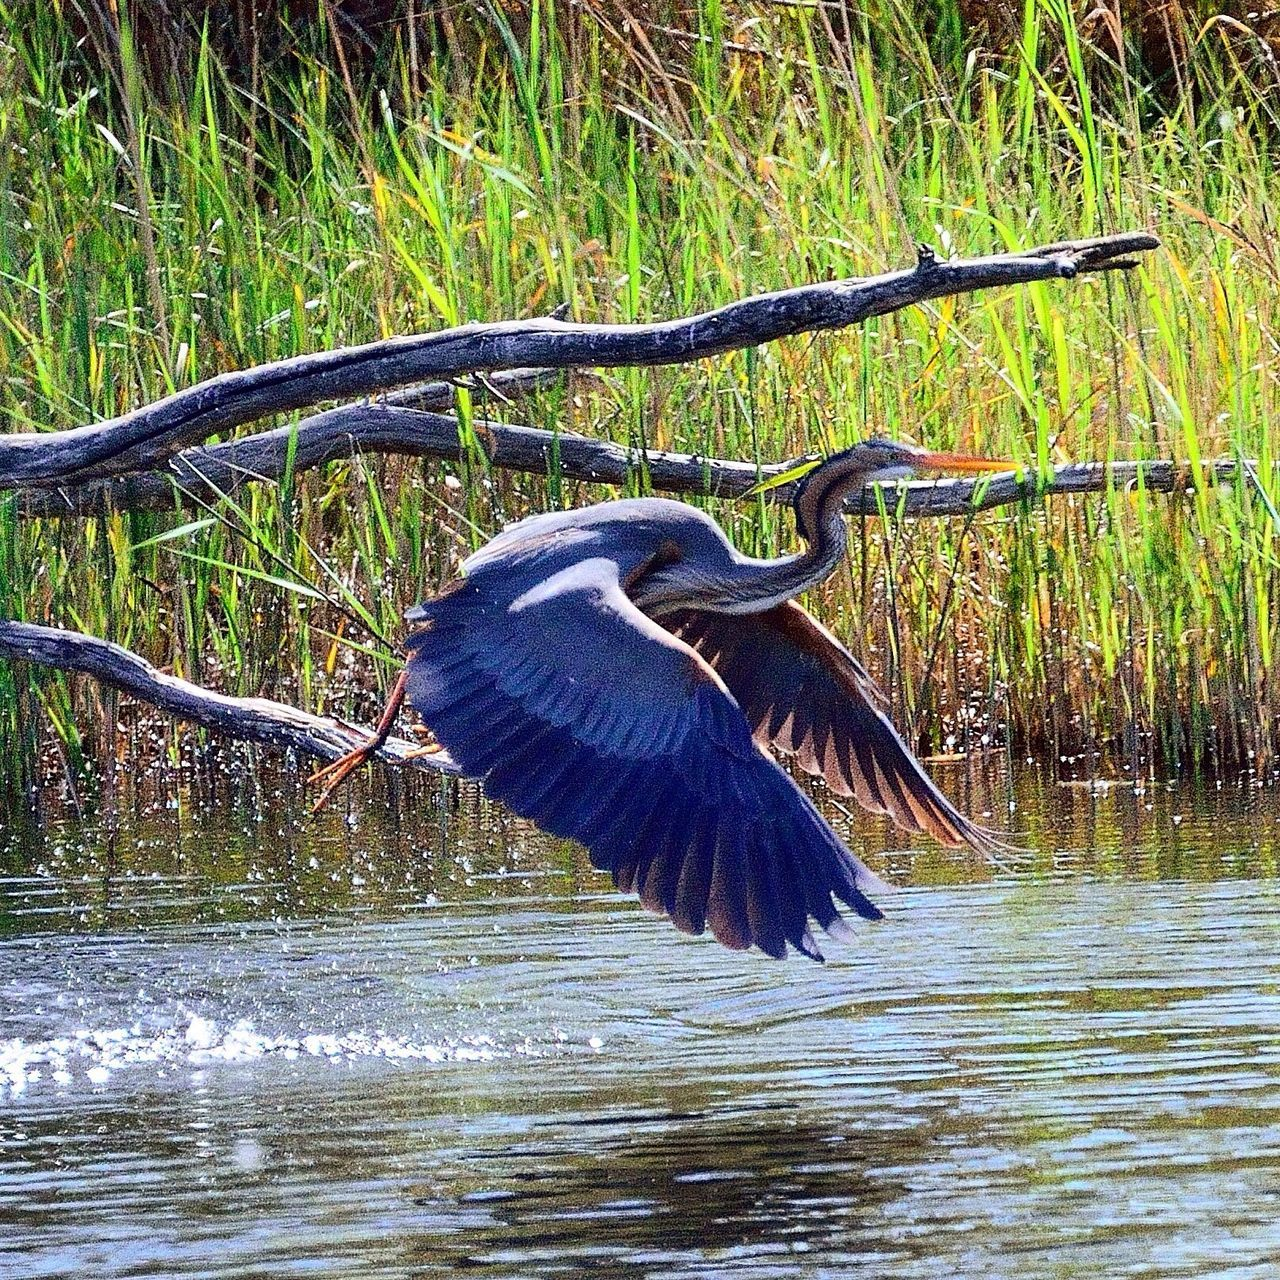 bird, great blue heron, animal wildlife, one animal, spread wings, animals in the wild, heron, gray heron, water, animal themes, nature, lake, no people, outdoors, day, tree, beauty in nature, close-up